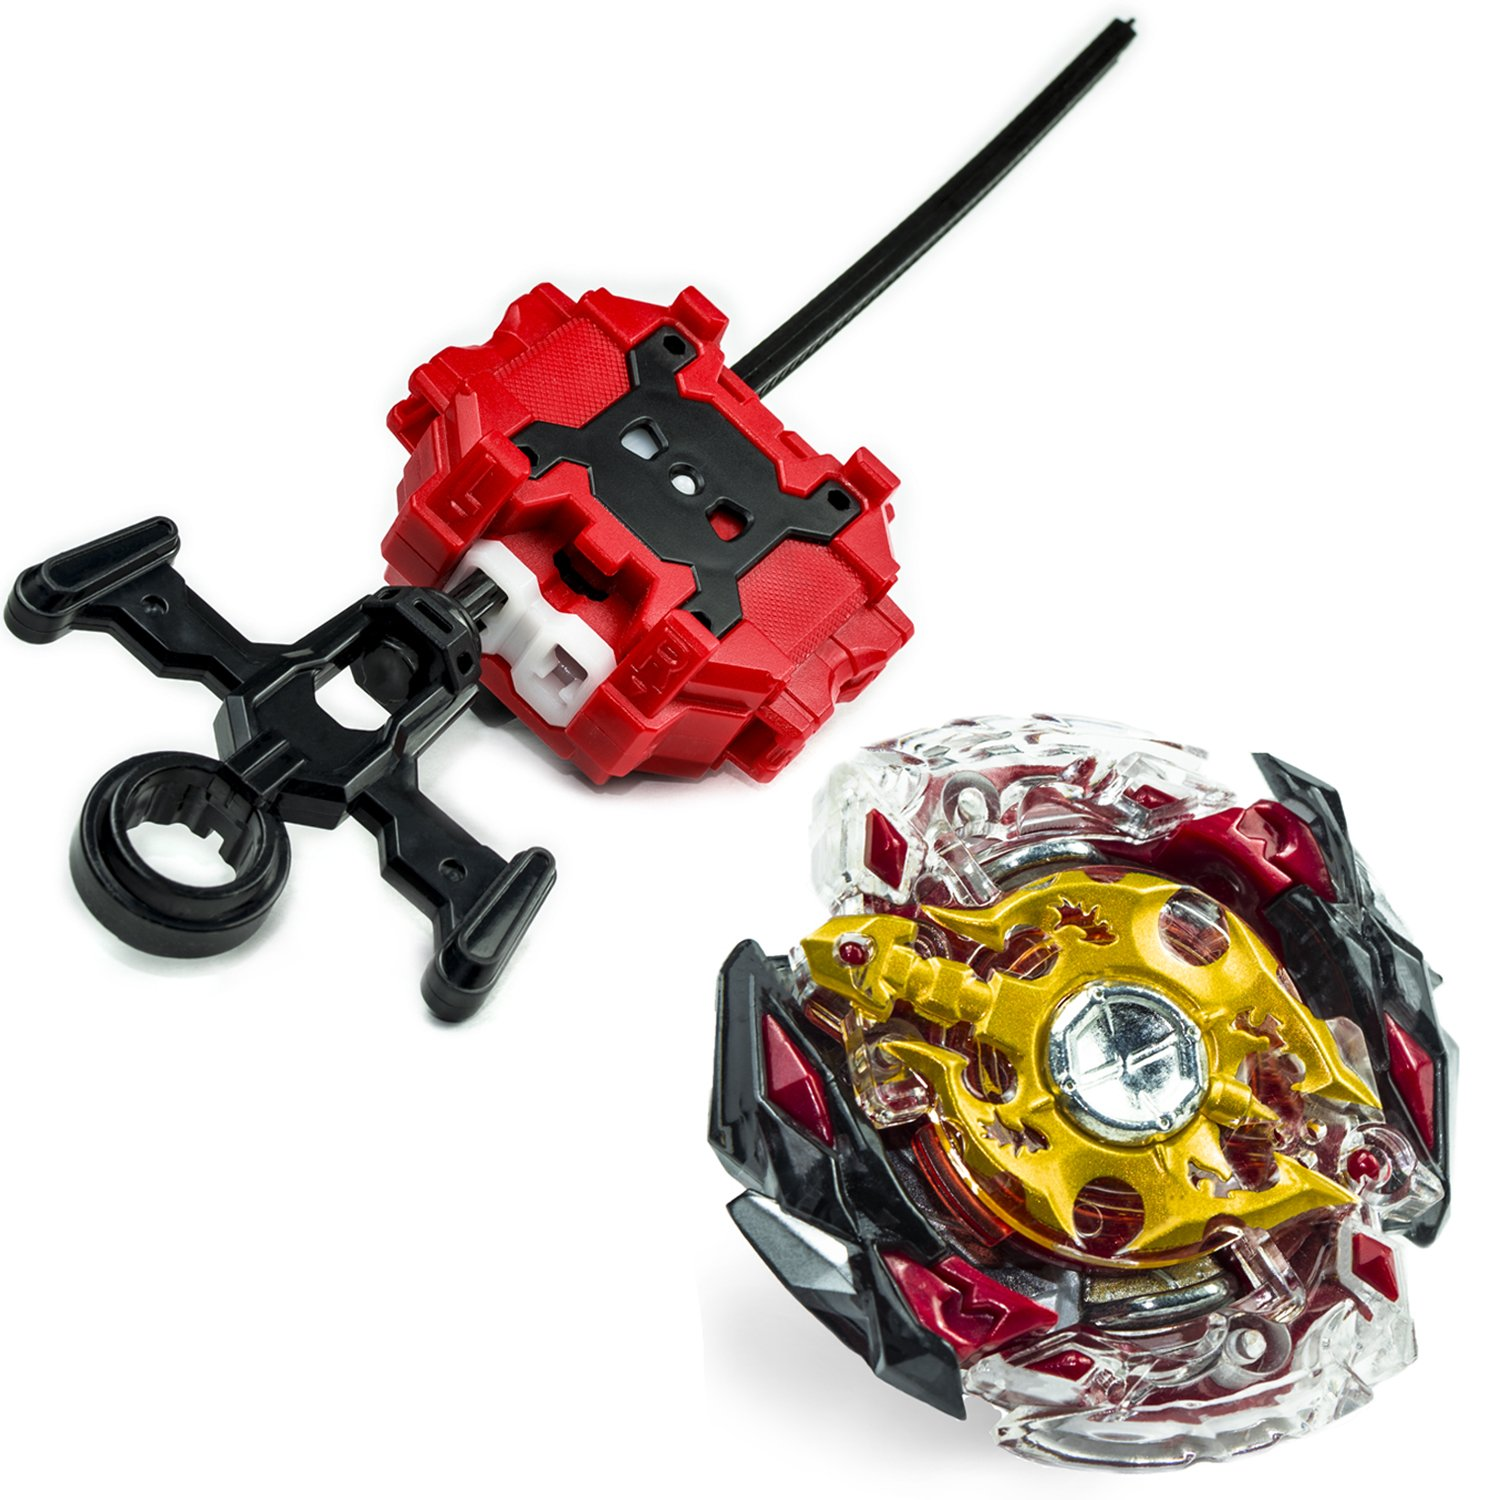 Beyblade Burst Legend Spriggan with Launcher (Starter Pack) Prime Tabletop Gaming Toys for Kids | Clockwise Spinning | Strong, Heavy-Duty Finish | Ages 5 and Up Now